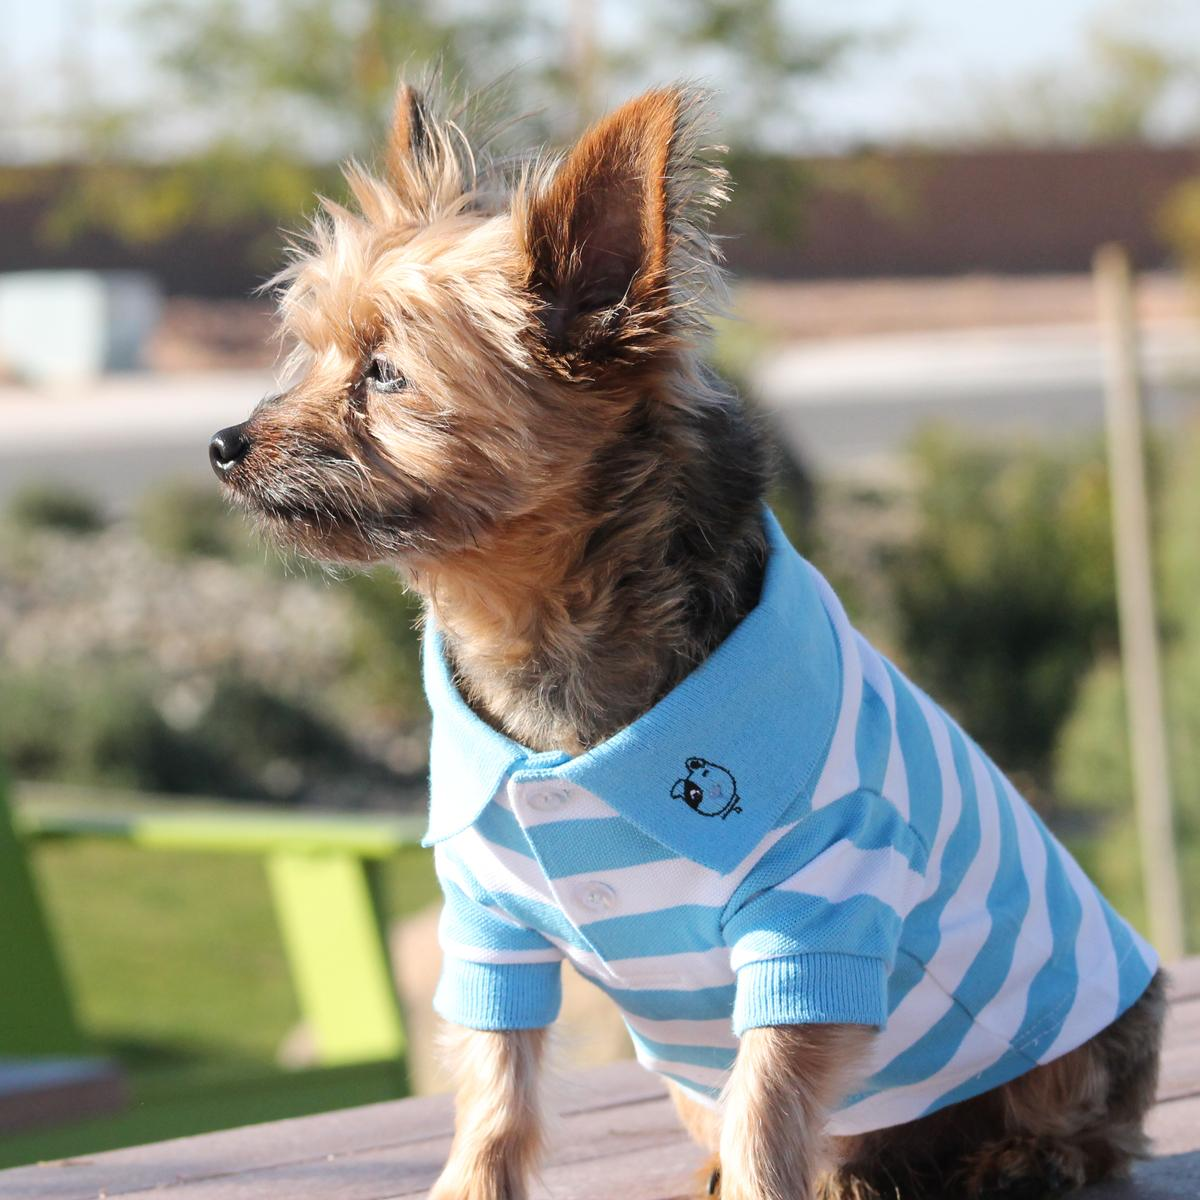 Stripped Dog Polo Shirt - Blue and White